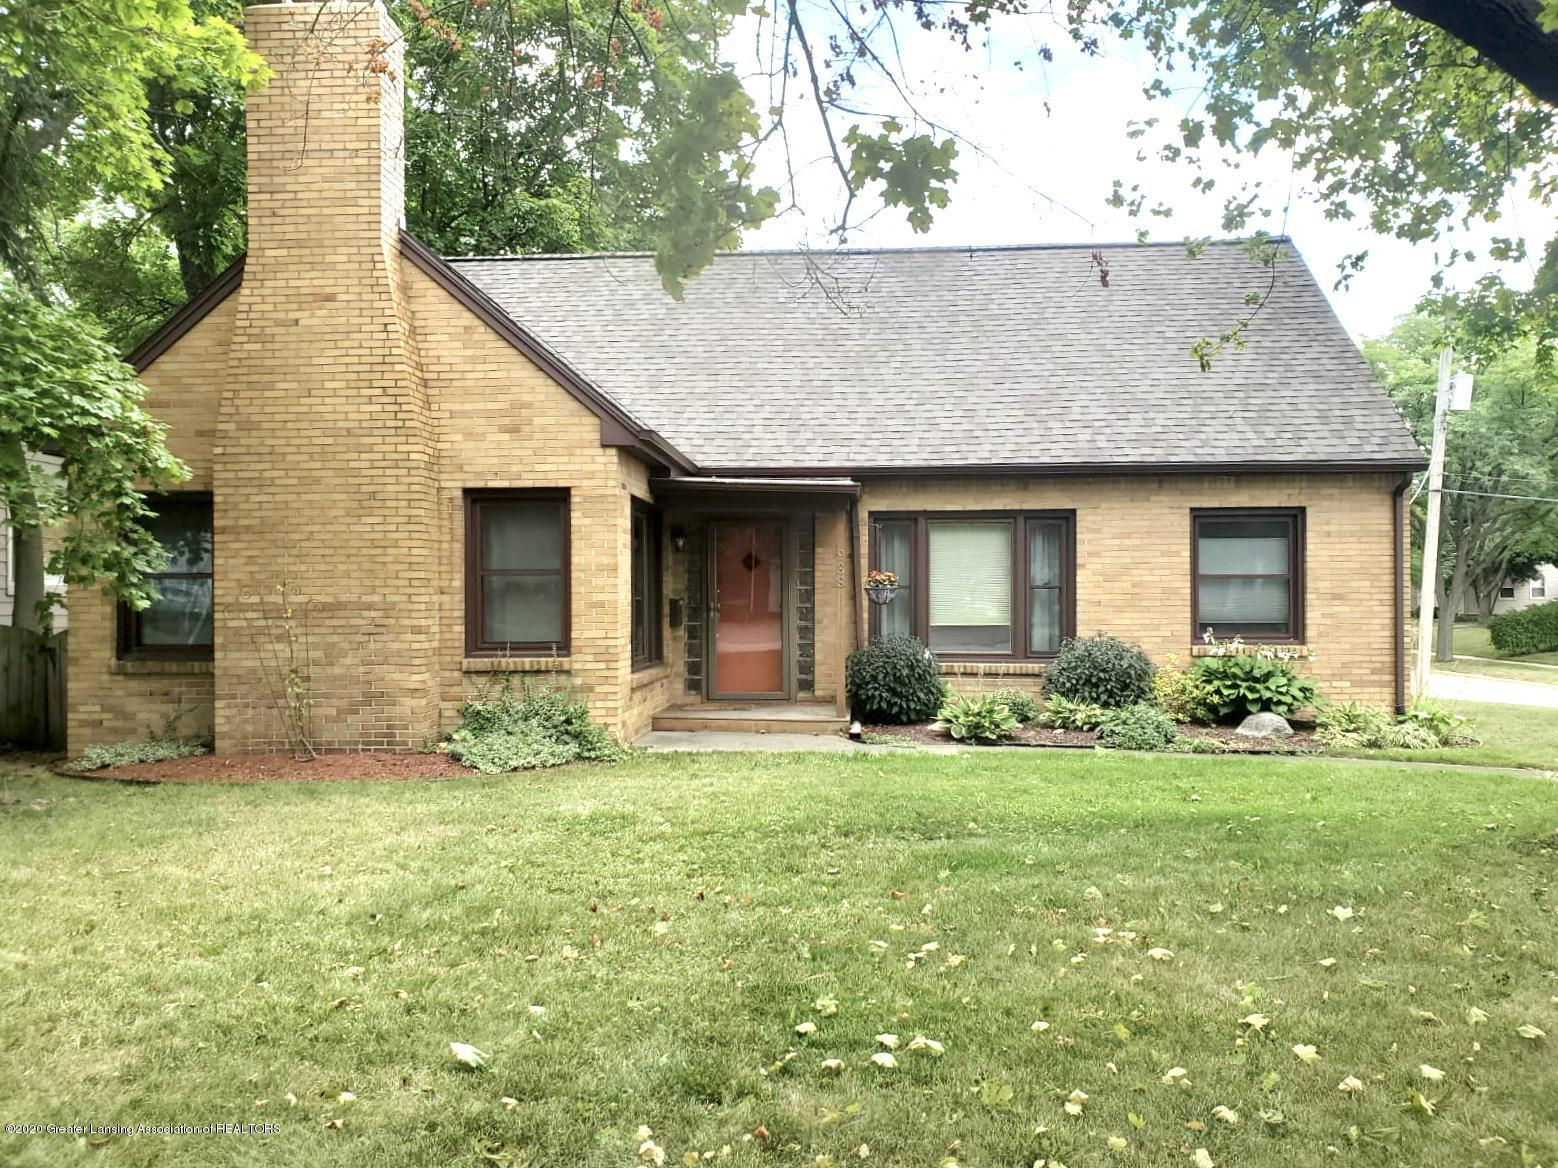 938 Coolidge Rd - Frontal View - 1